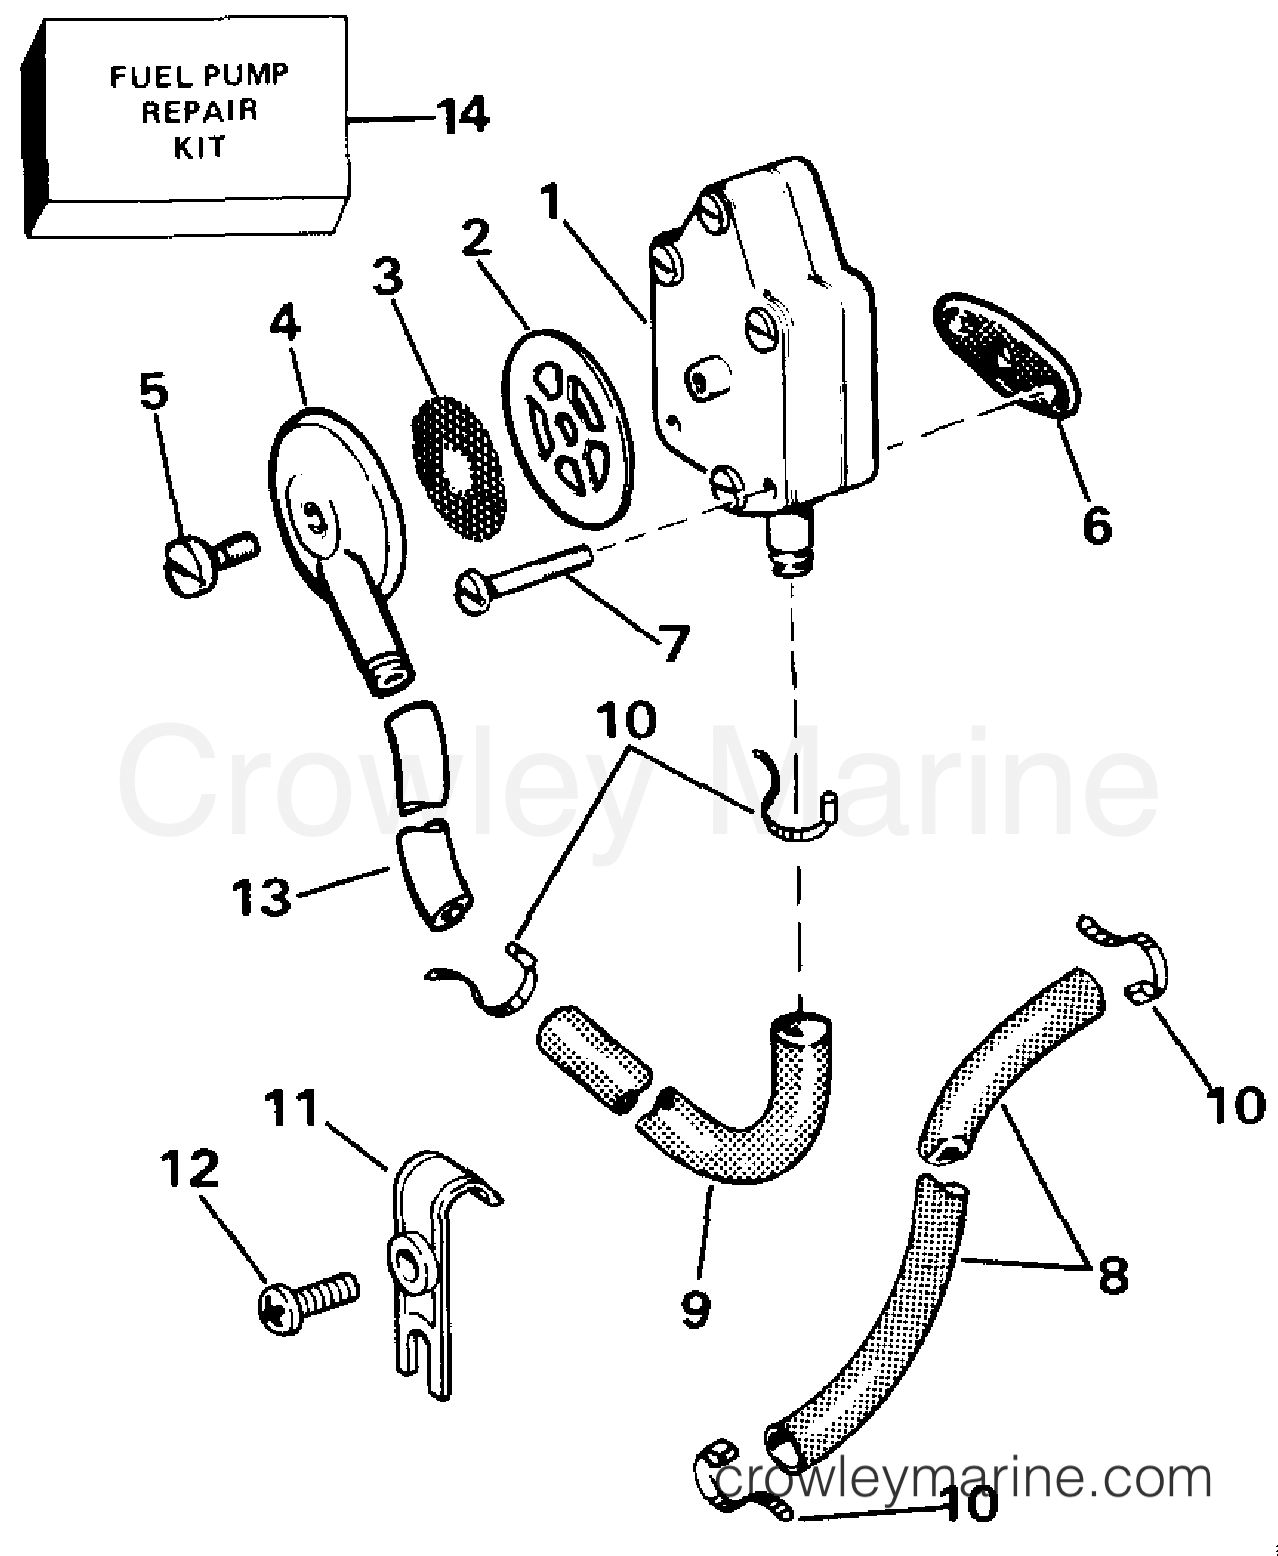 fuel pump and filter 1987 evinrude outboards 35 e35arlcud rh crowleymarine com evinrude 4 hp fuel pump diagram evinrude 6 hp fuel pump diagram